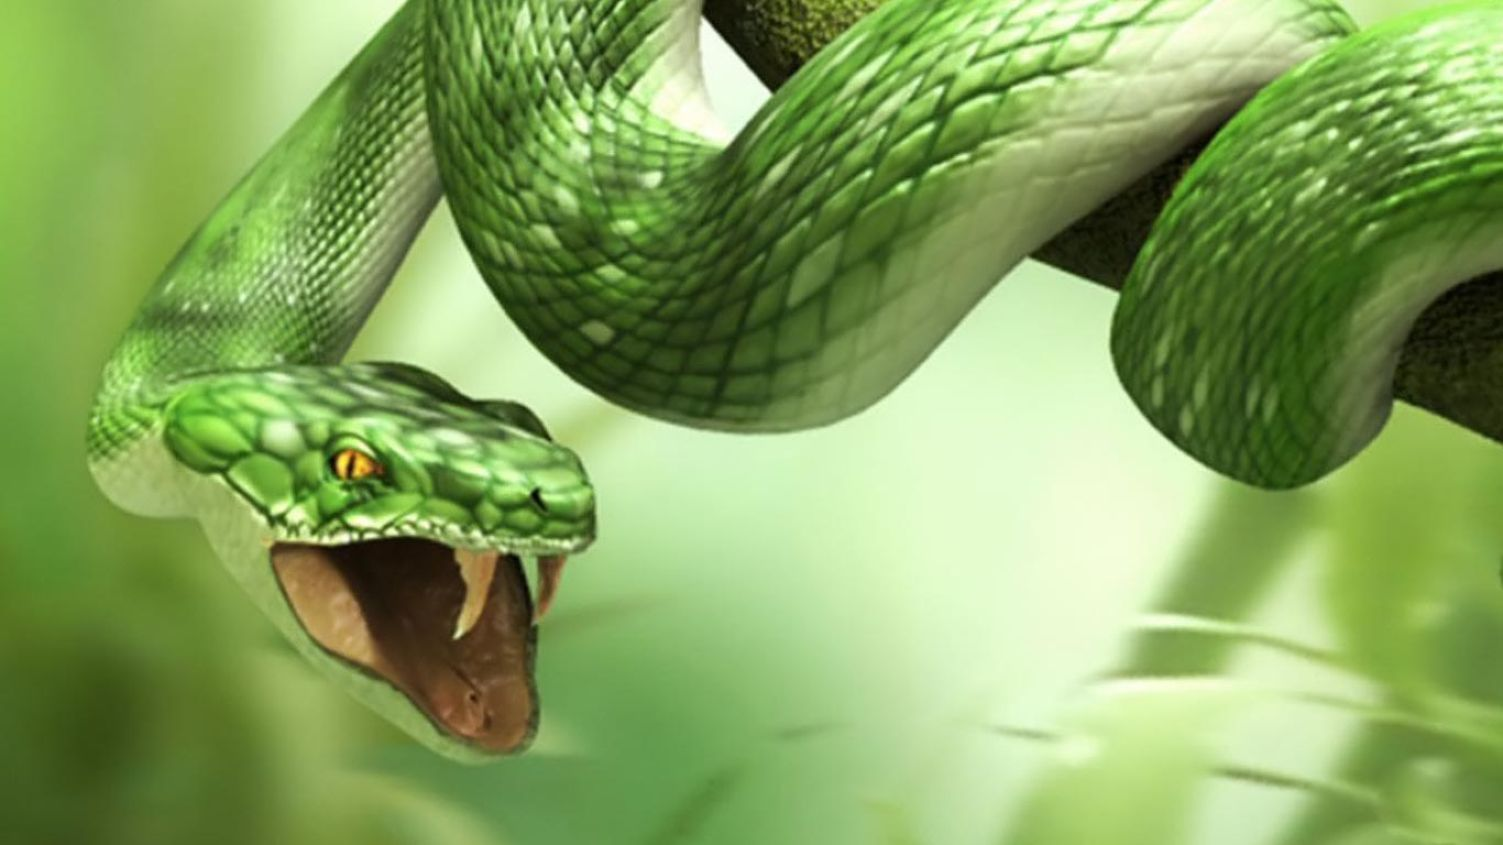 3D Snake HD For Laptop 1366x768 Wallpaper